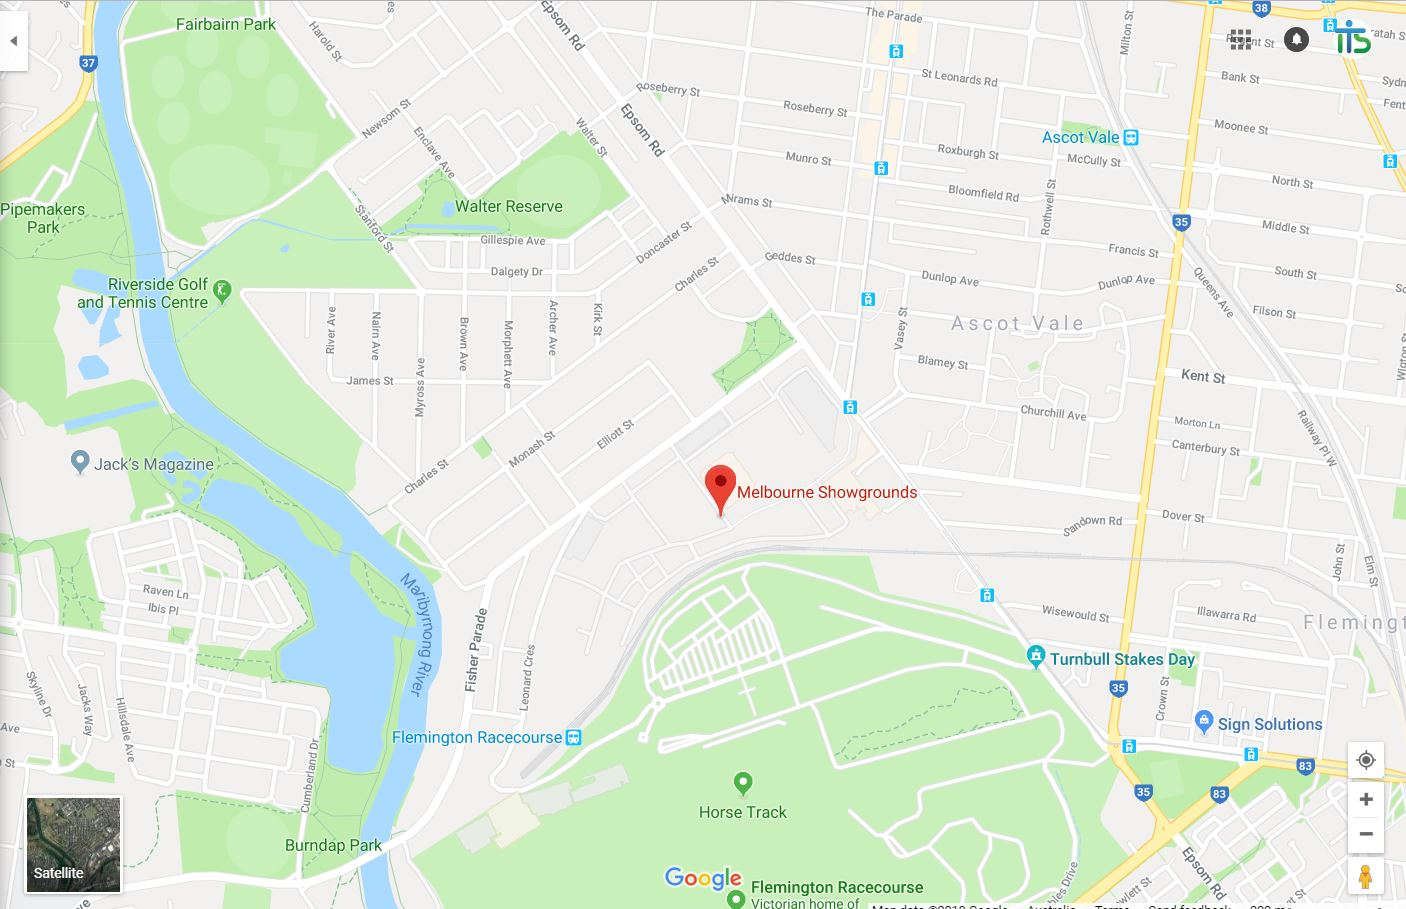 Melbourne Show Grounds - Google Map